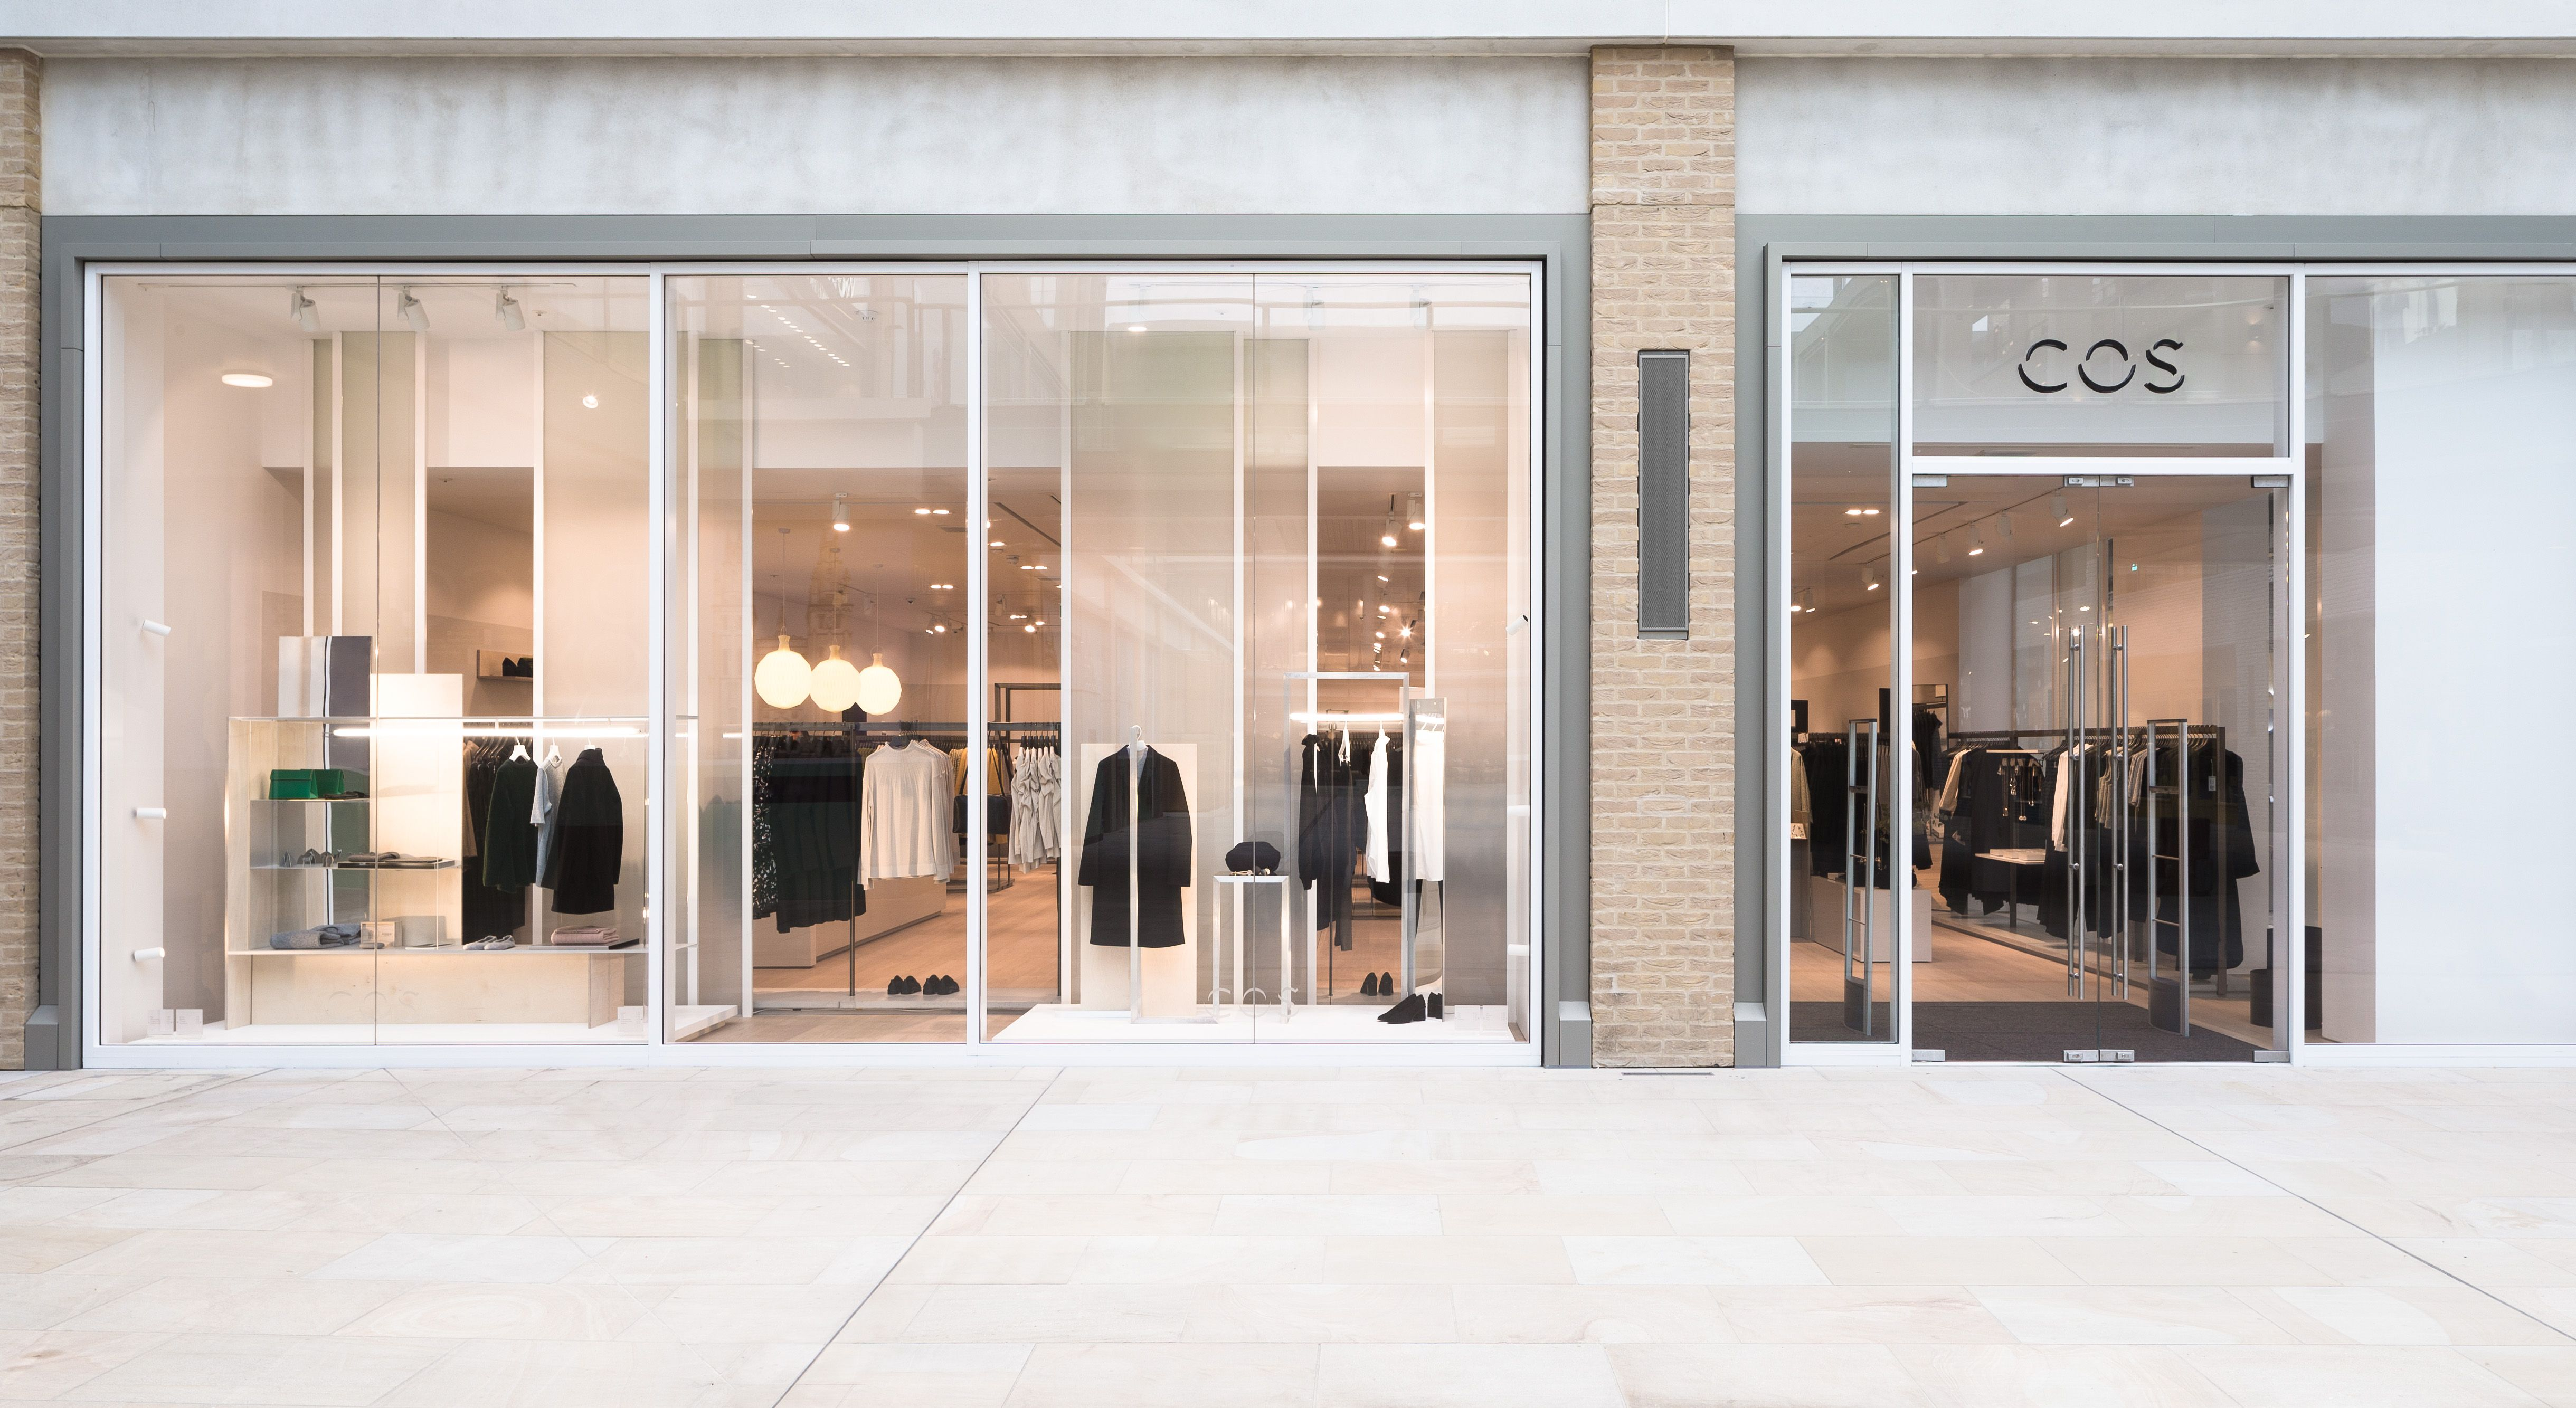 COS | Stores | Westgate, Oxford | Cos stores, Facade design, Architecture